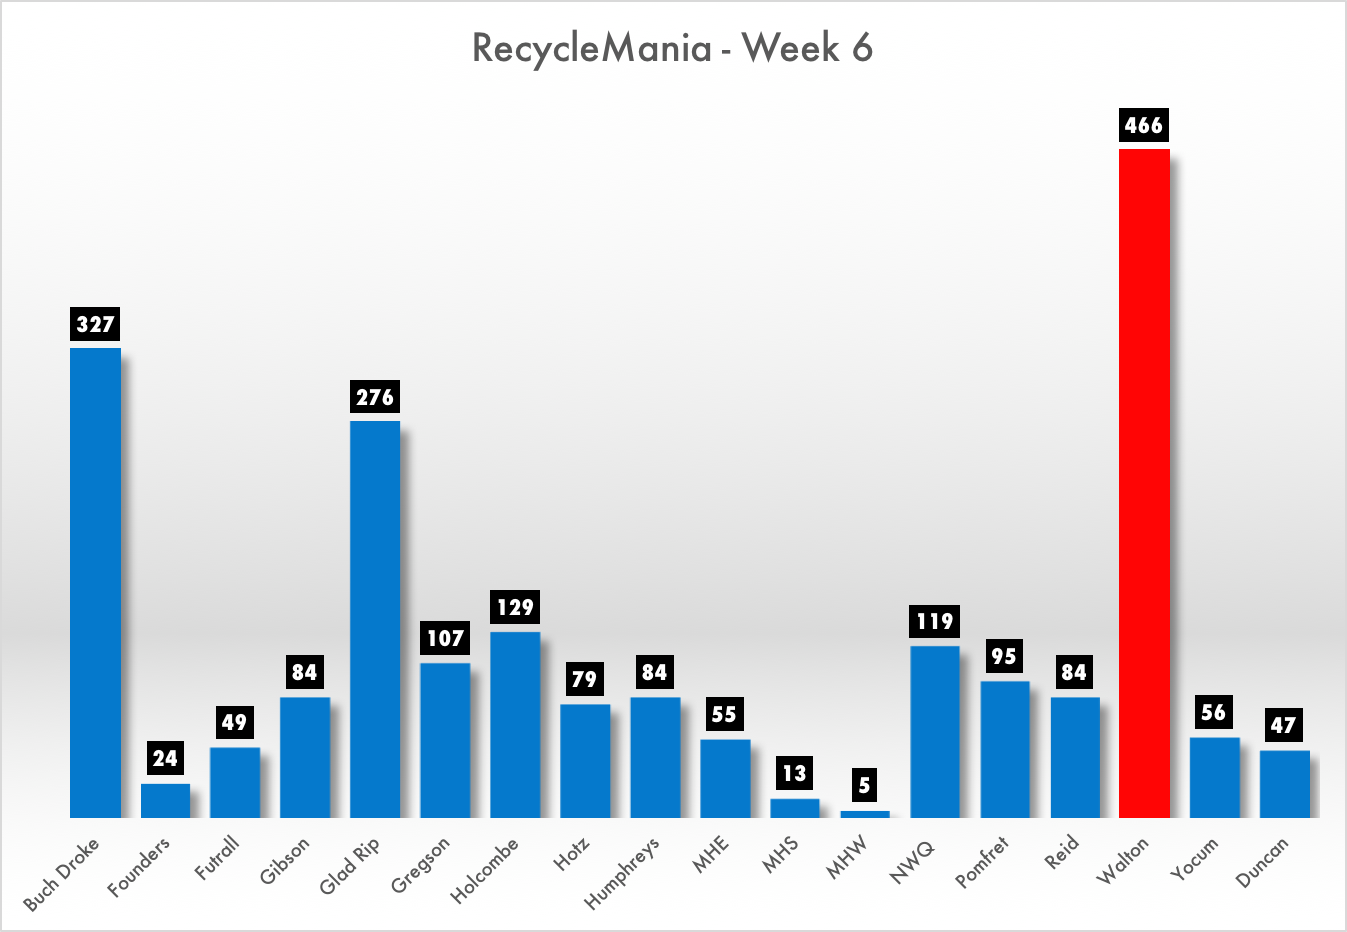 Walton Holds the Lead | RecycleMania Week 6